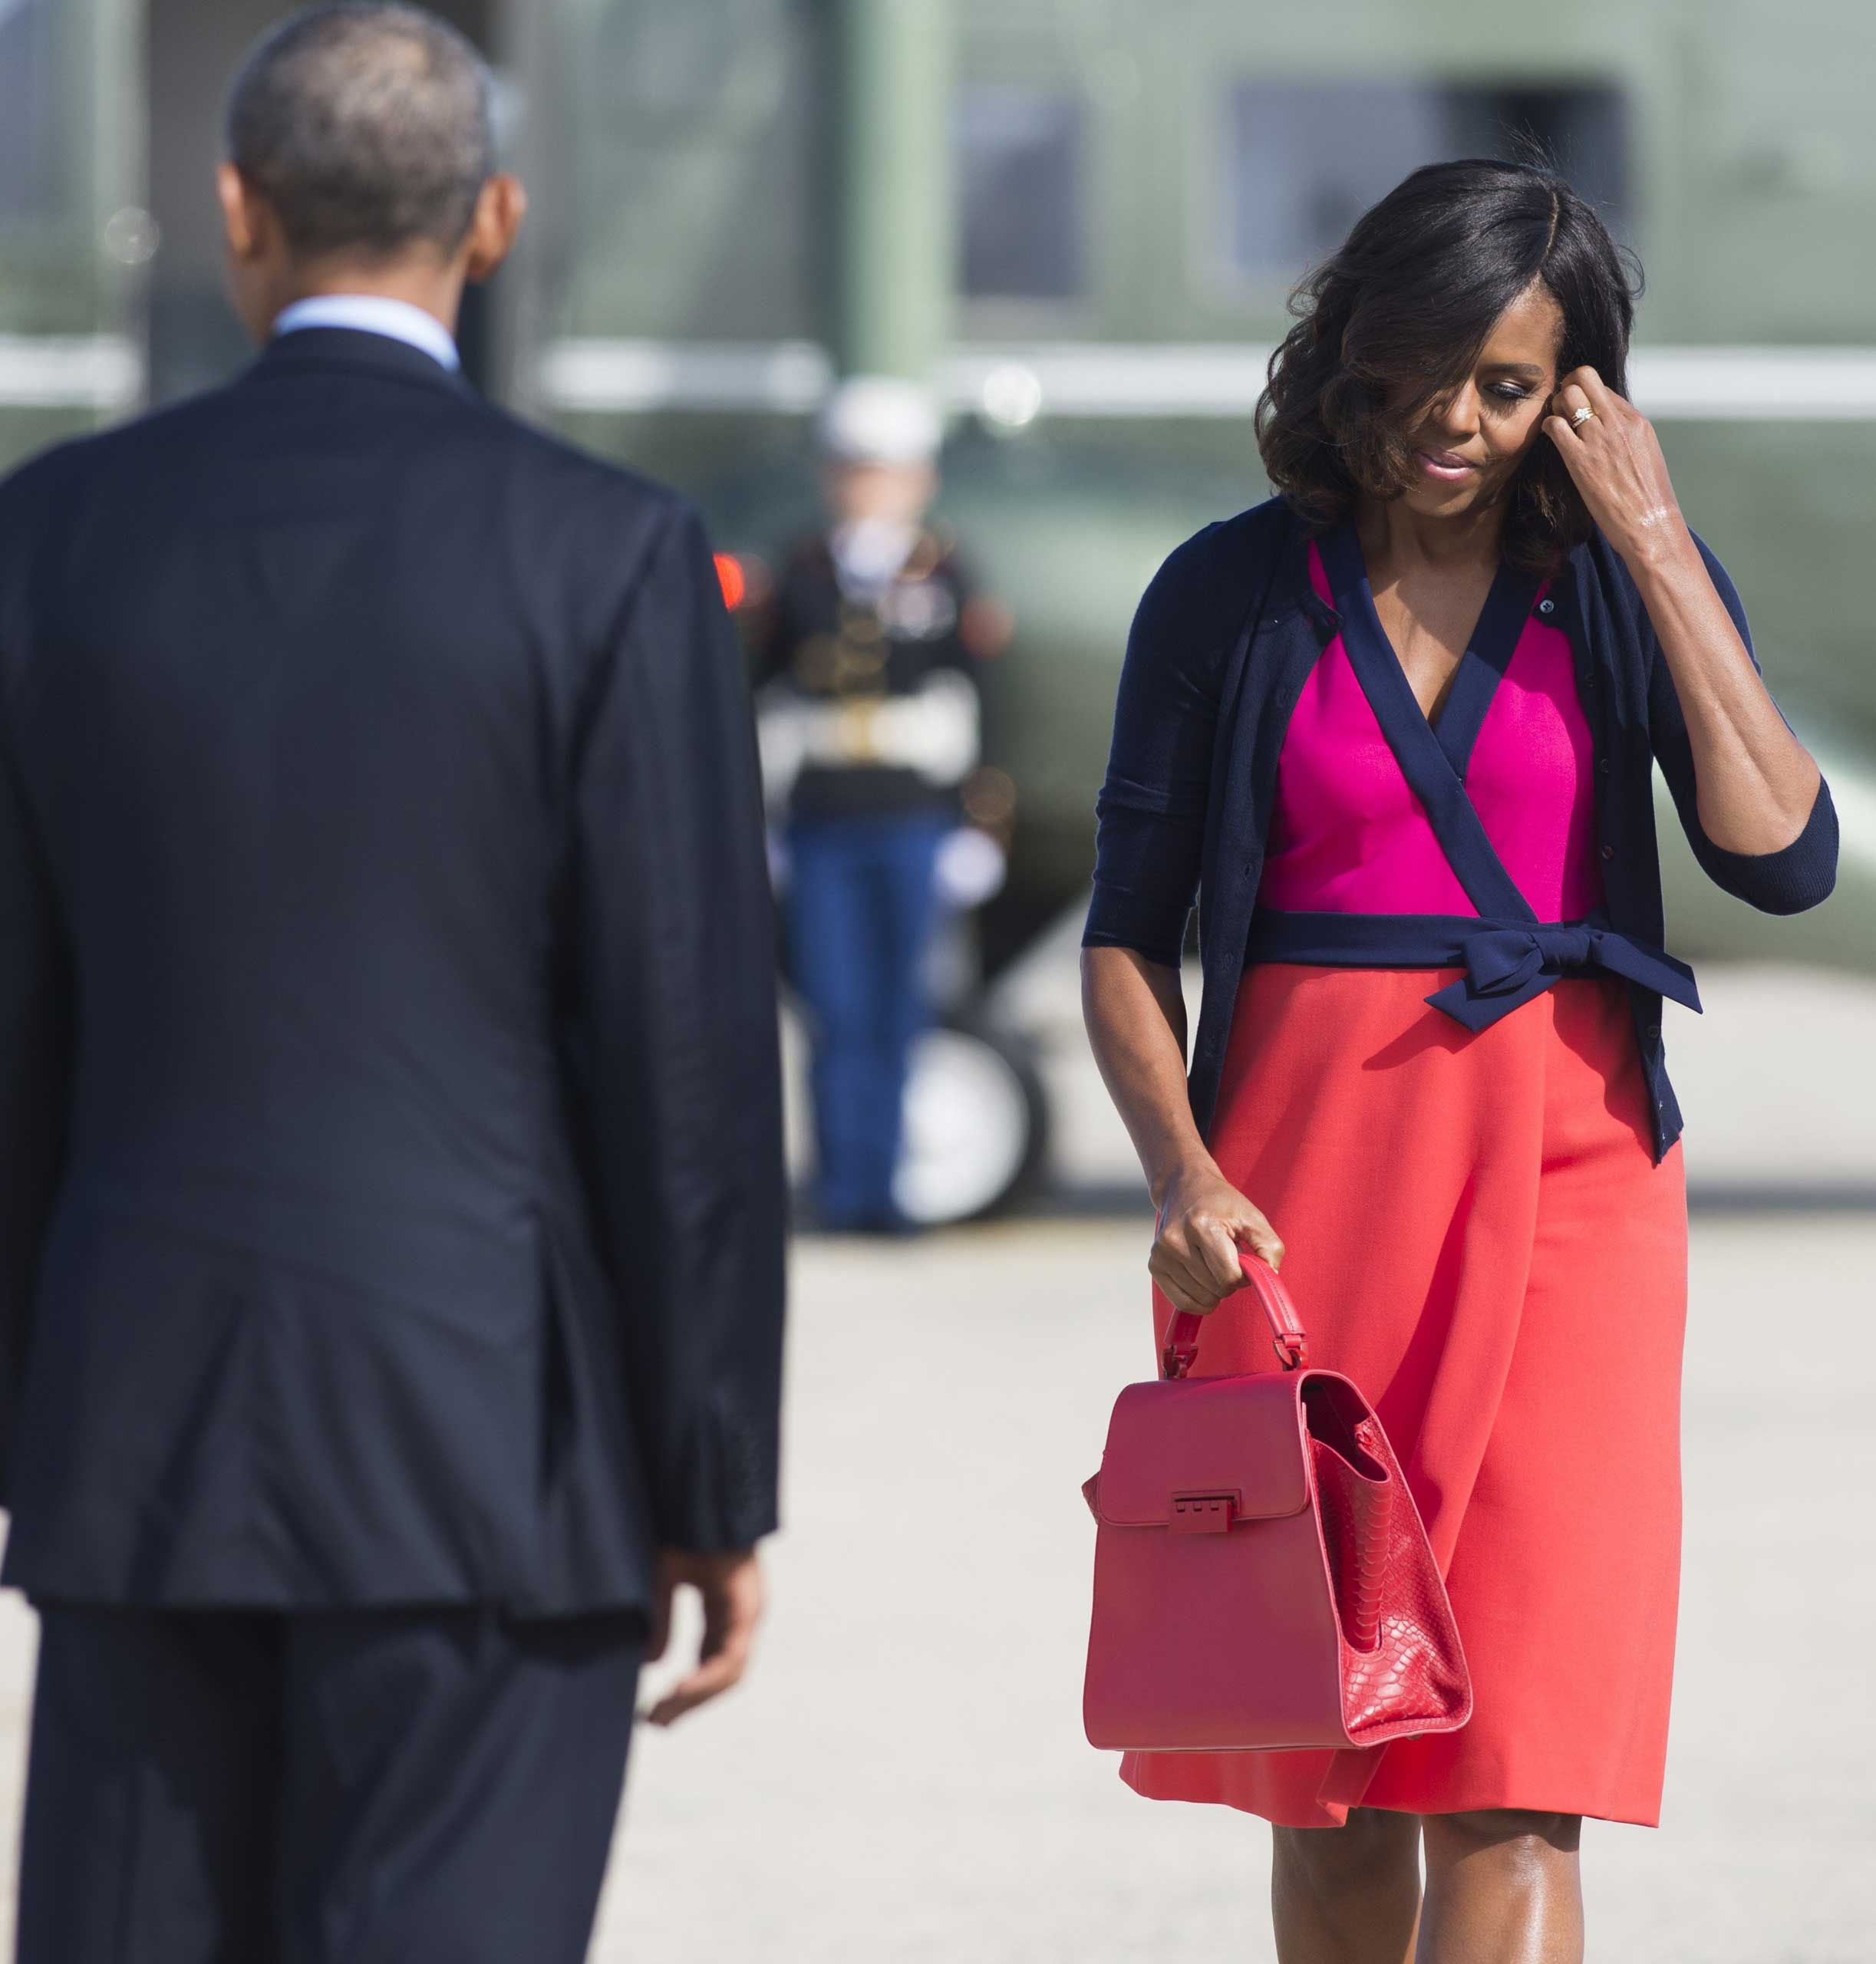 During a visit to New York for the United Nations General Assembly, Obama wore a colorful wrap from Diane von Furstenberg.